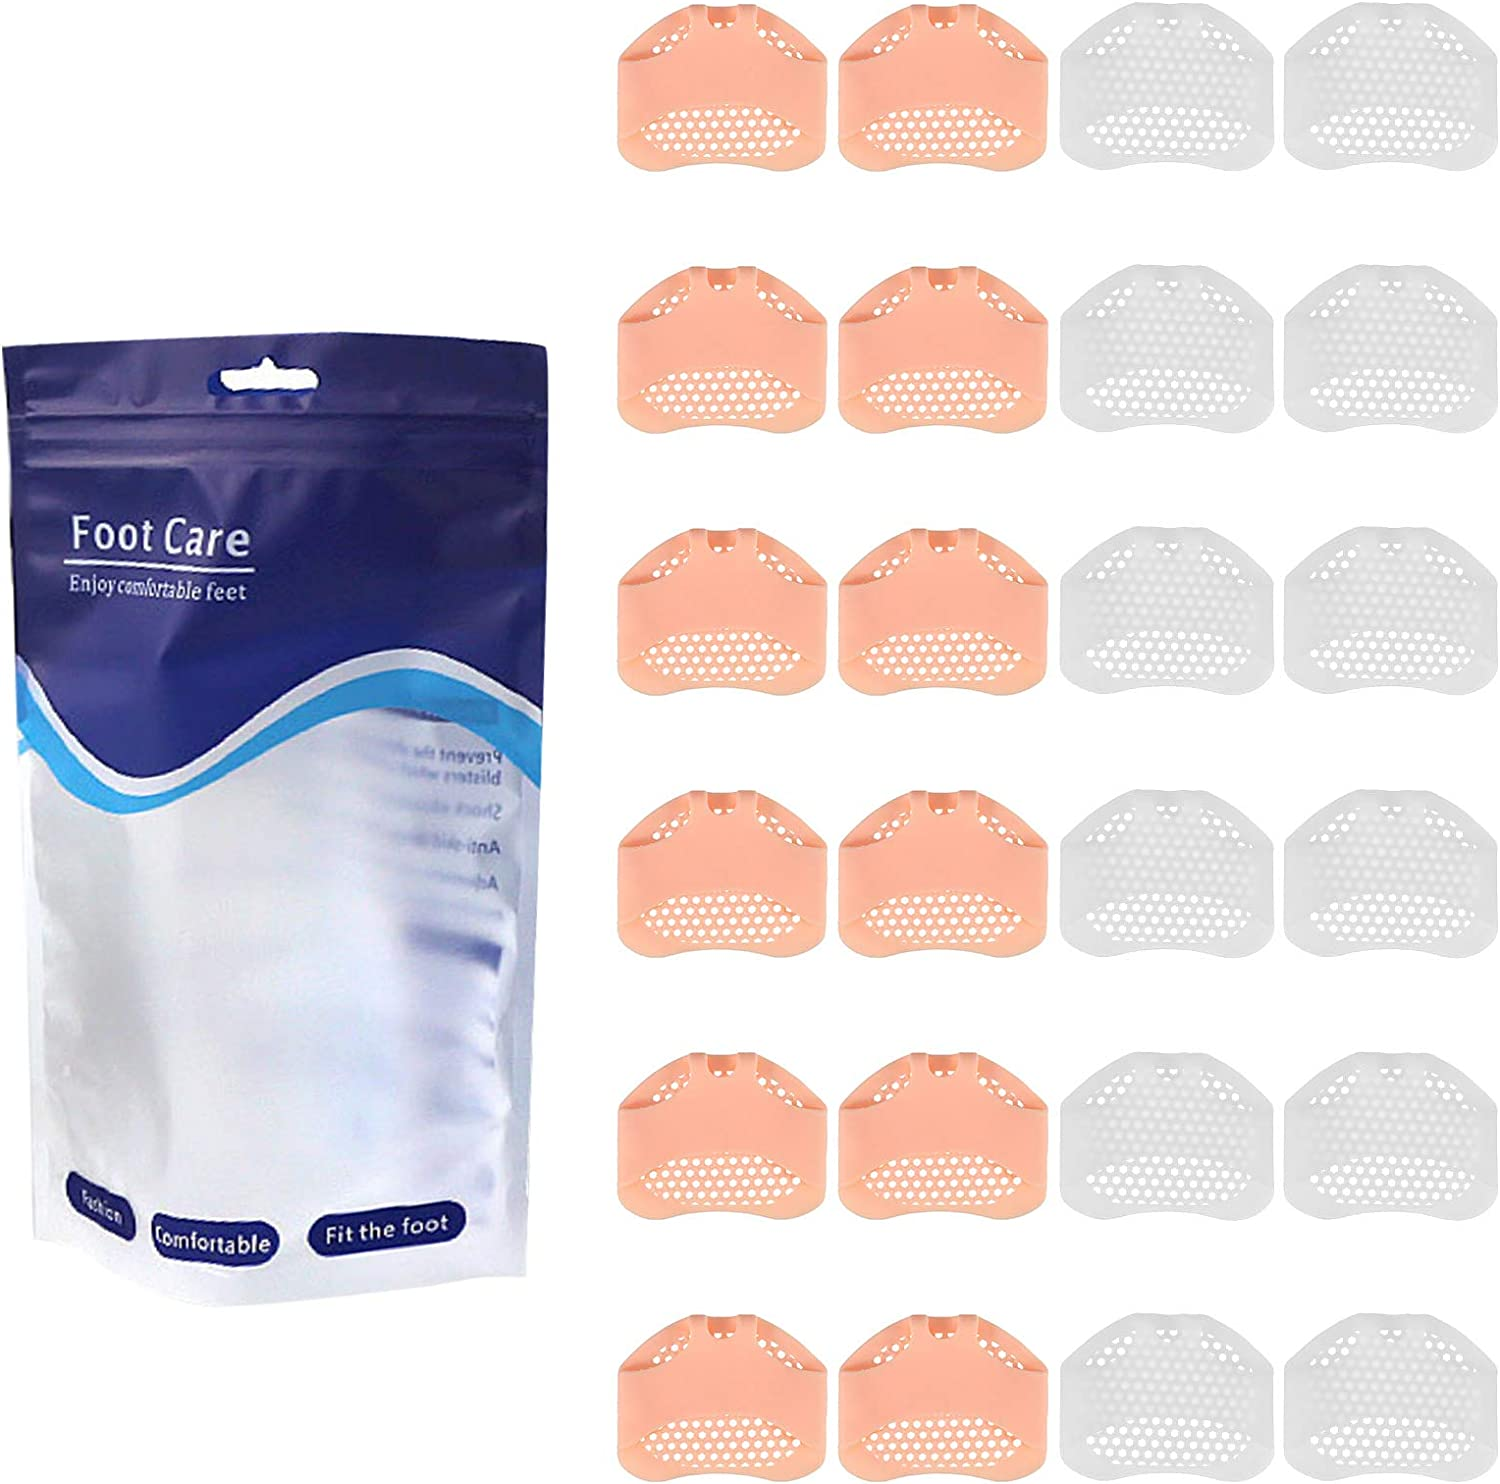 Hippie Soul 12 Pairs Ball of Foot Cushions Silicone Metatarsal Pads Honeycomb Forefoot Pad Soft Gel Foot Cushion for Reducing Forefoot Pain Callus Blisters: Health & Personal Care